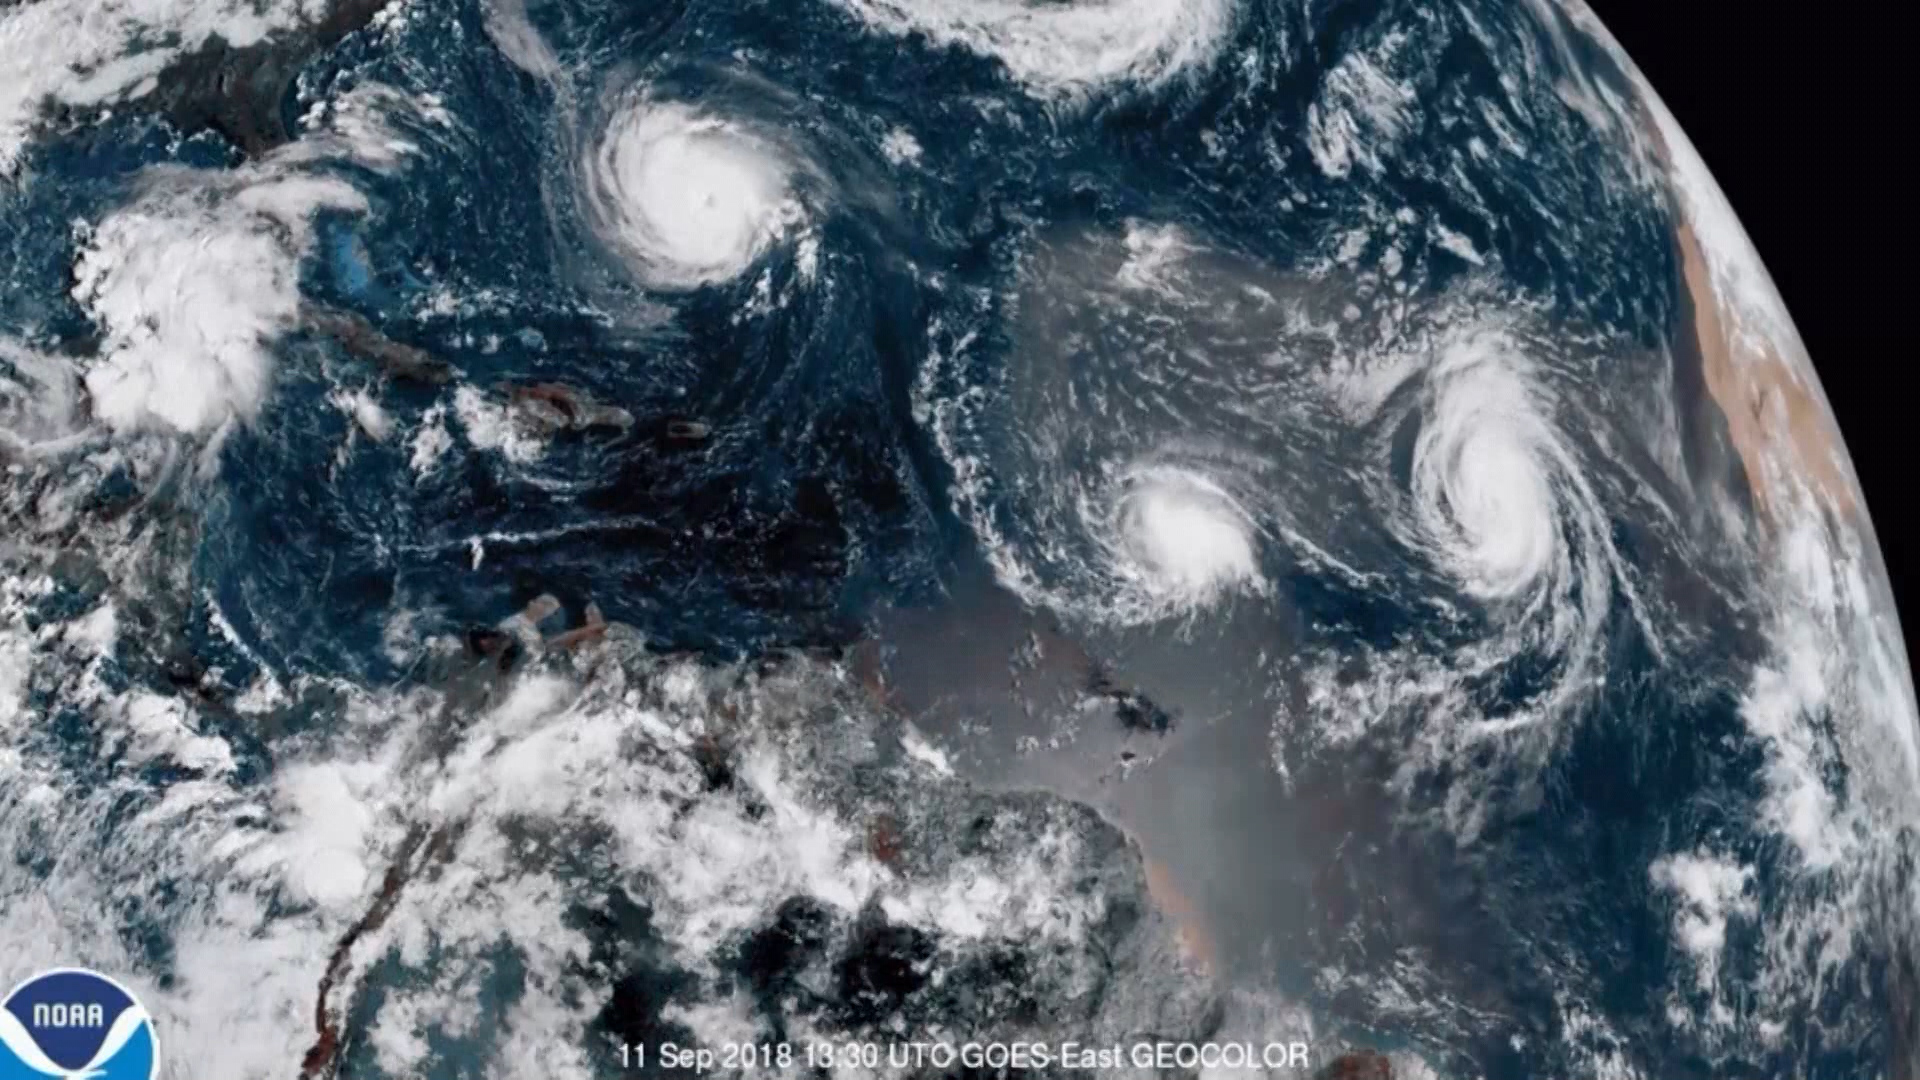 Satellite images show Hurricane Florence as it nears U.S. coast